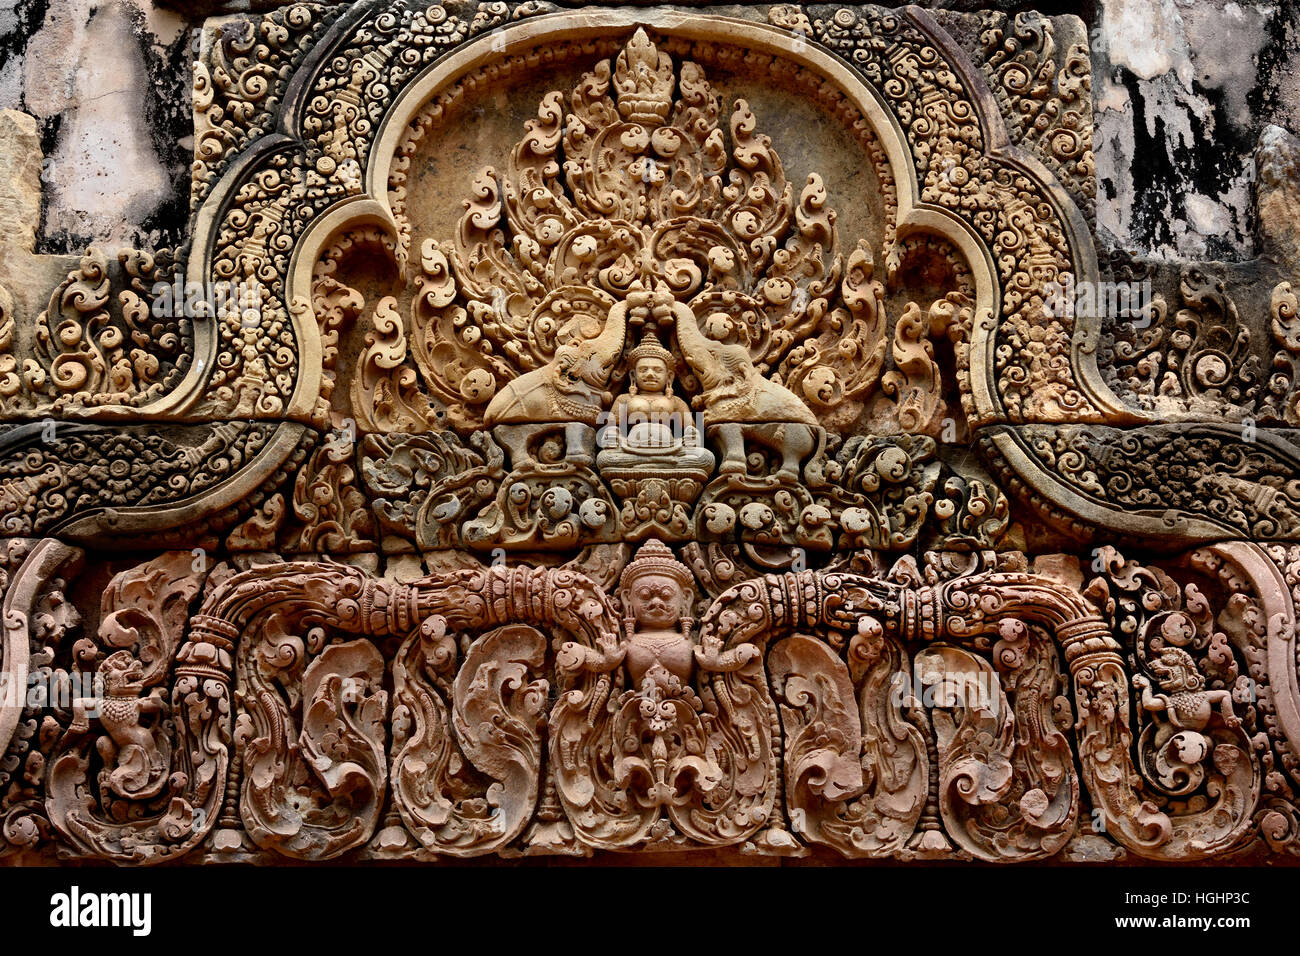 Banteay Srei - Srey Cambodian Temple 10th century Hindu temple dedicated to Shiva. Siem Reap, Cambodia ( Angkor - Stock Image